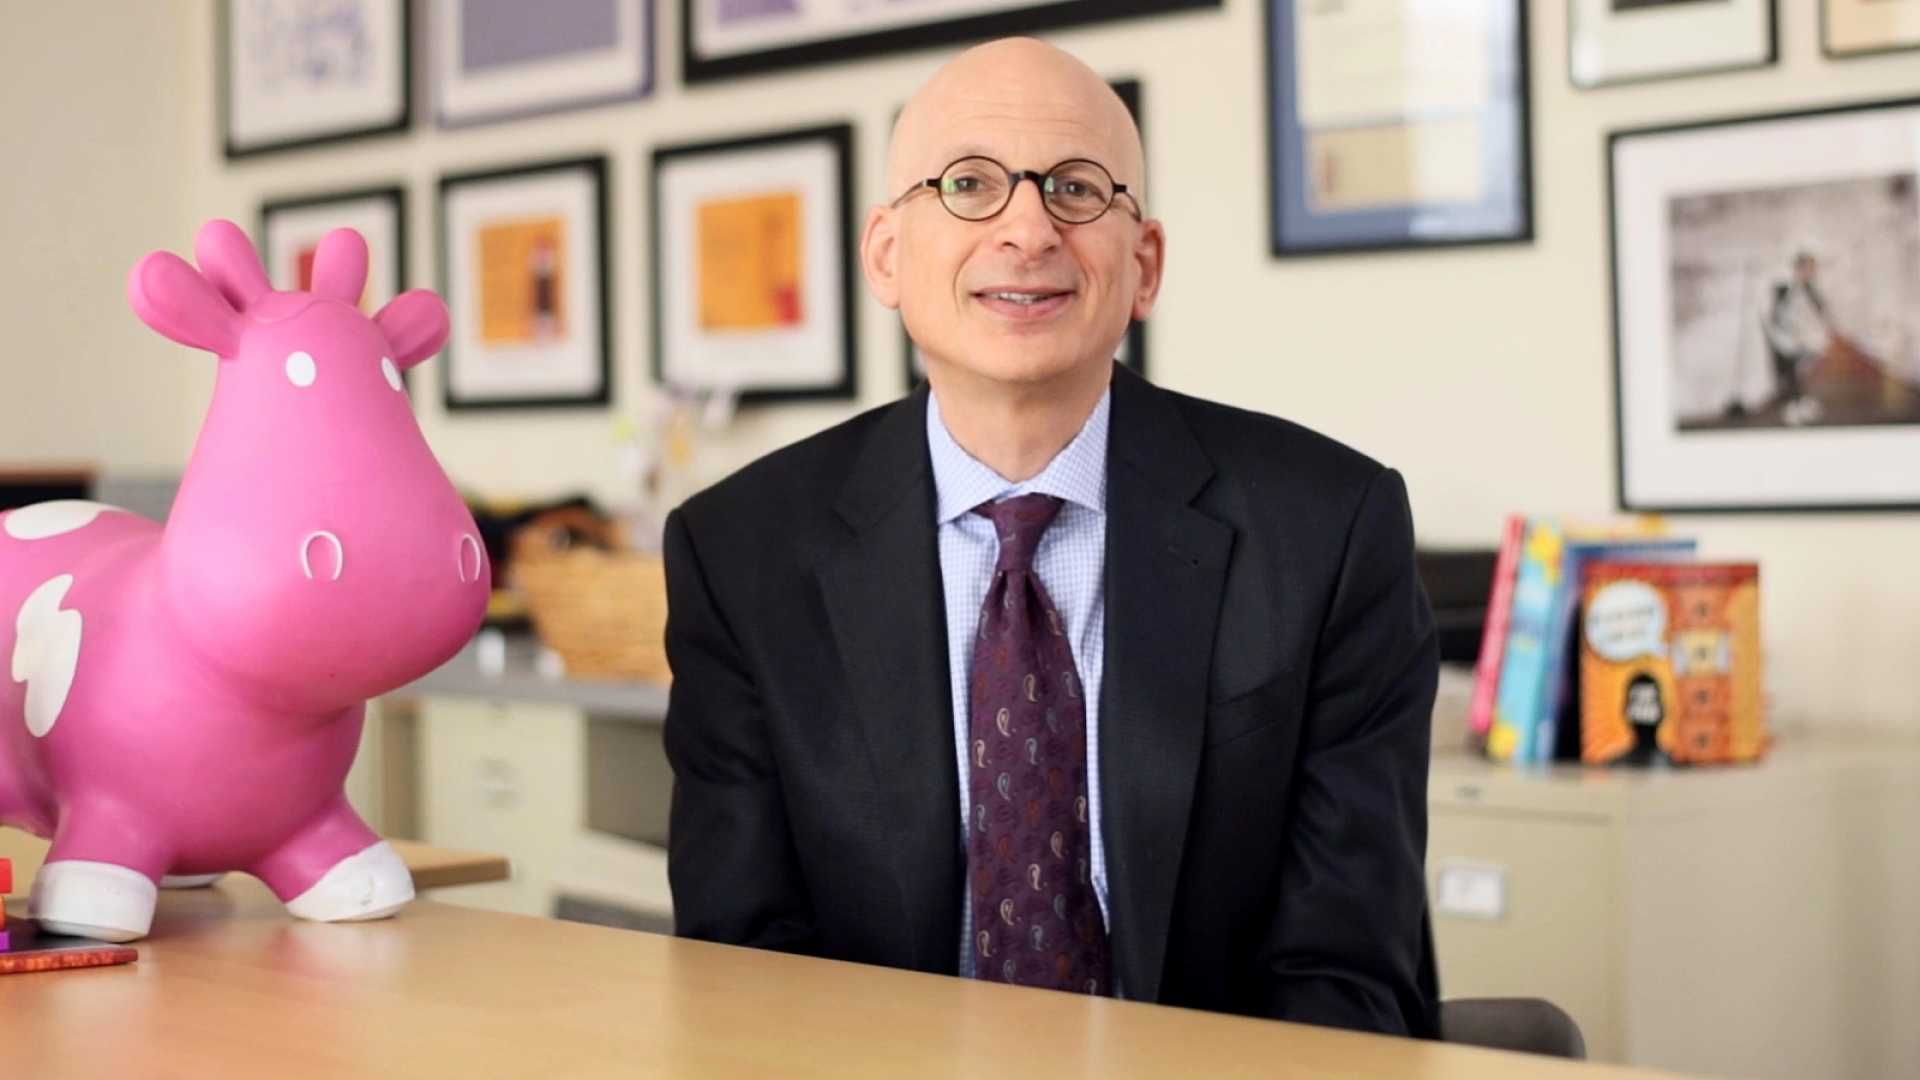 Seth Godin on What Marketers Are Getting Wrong